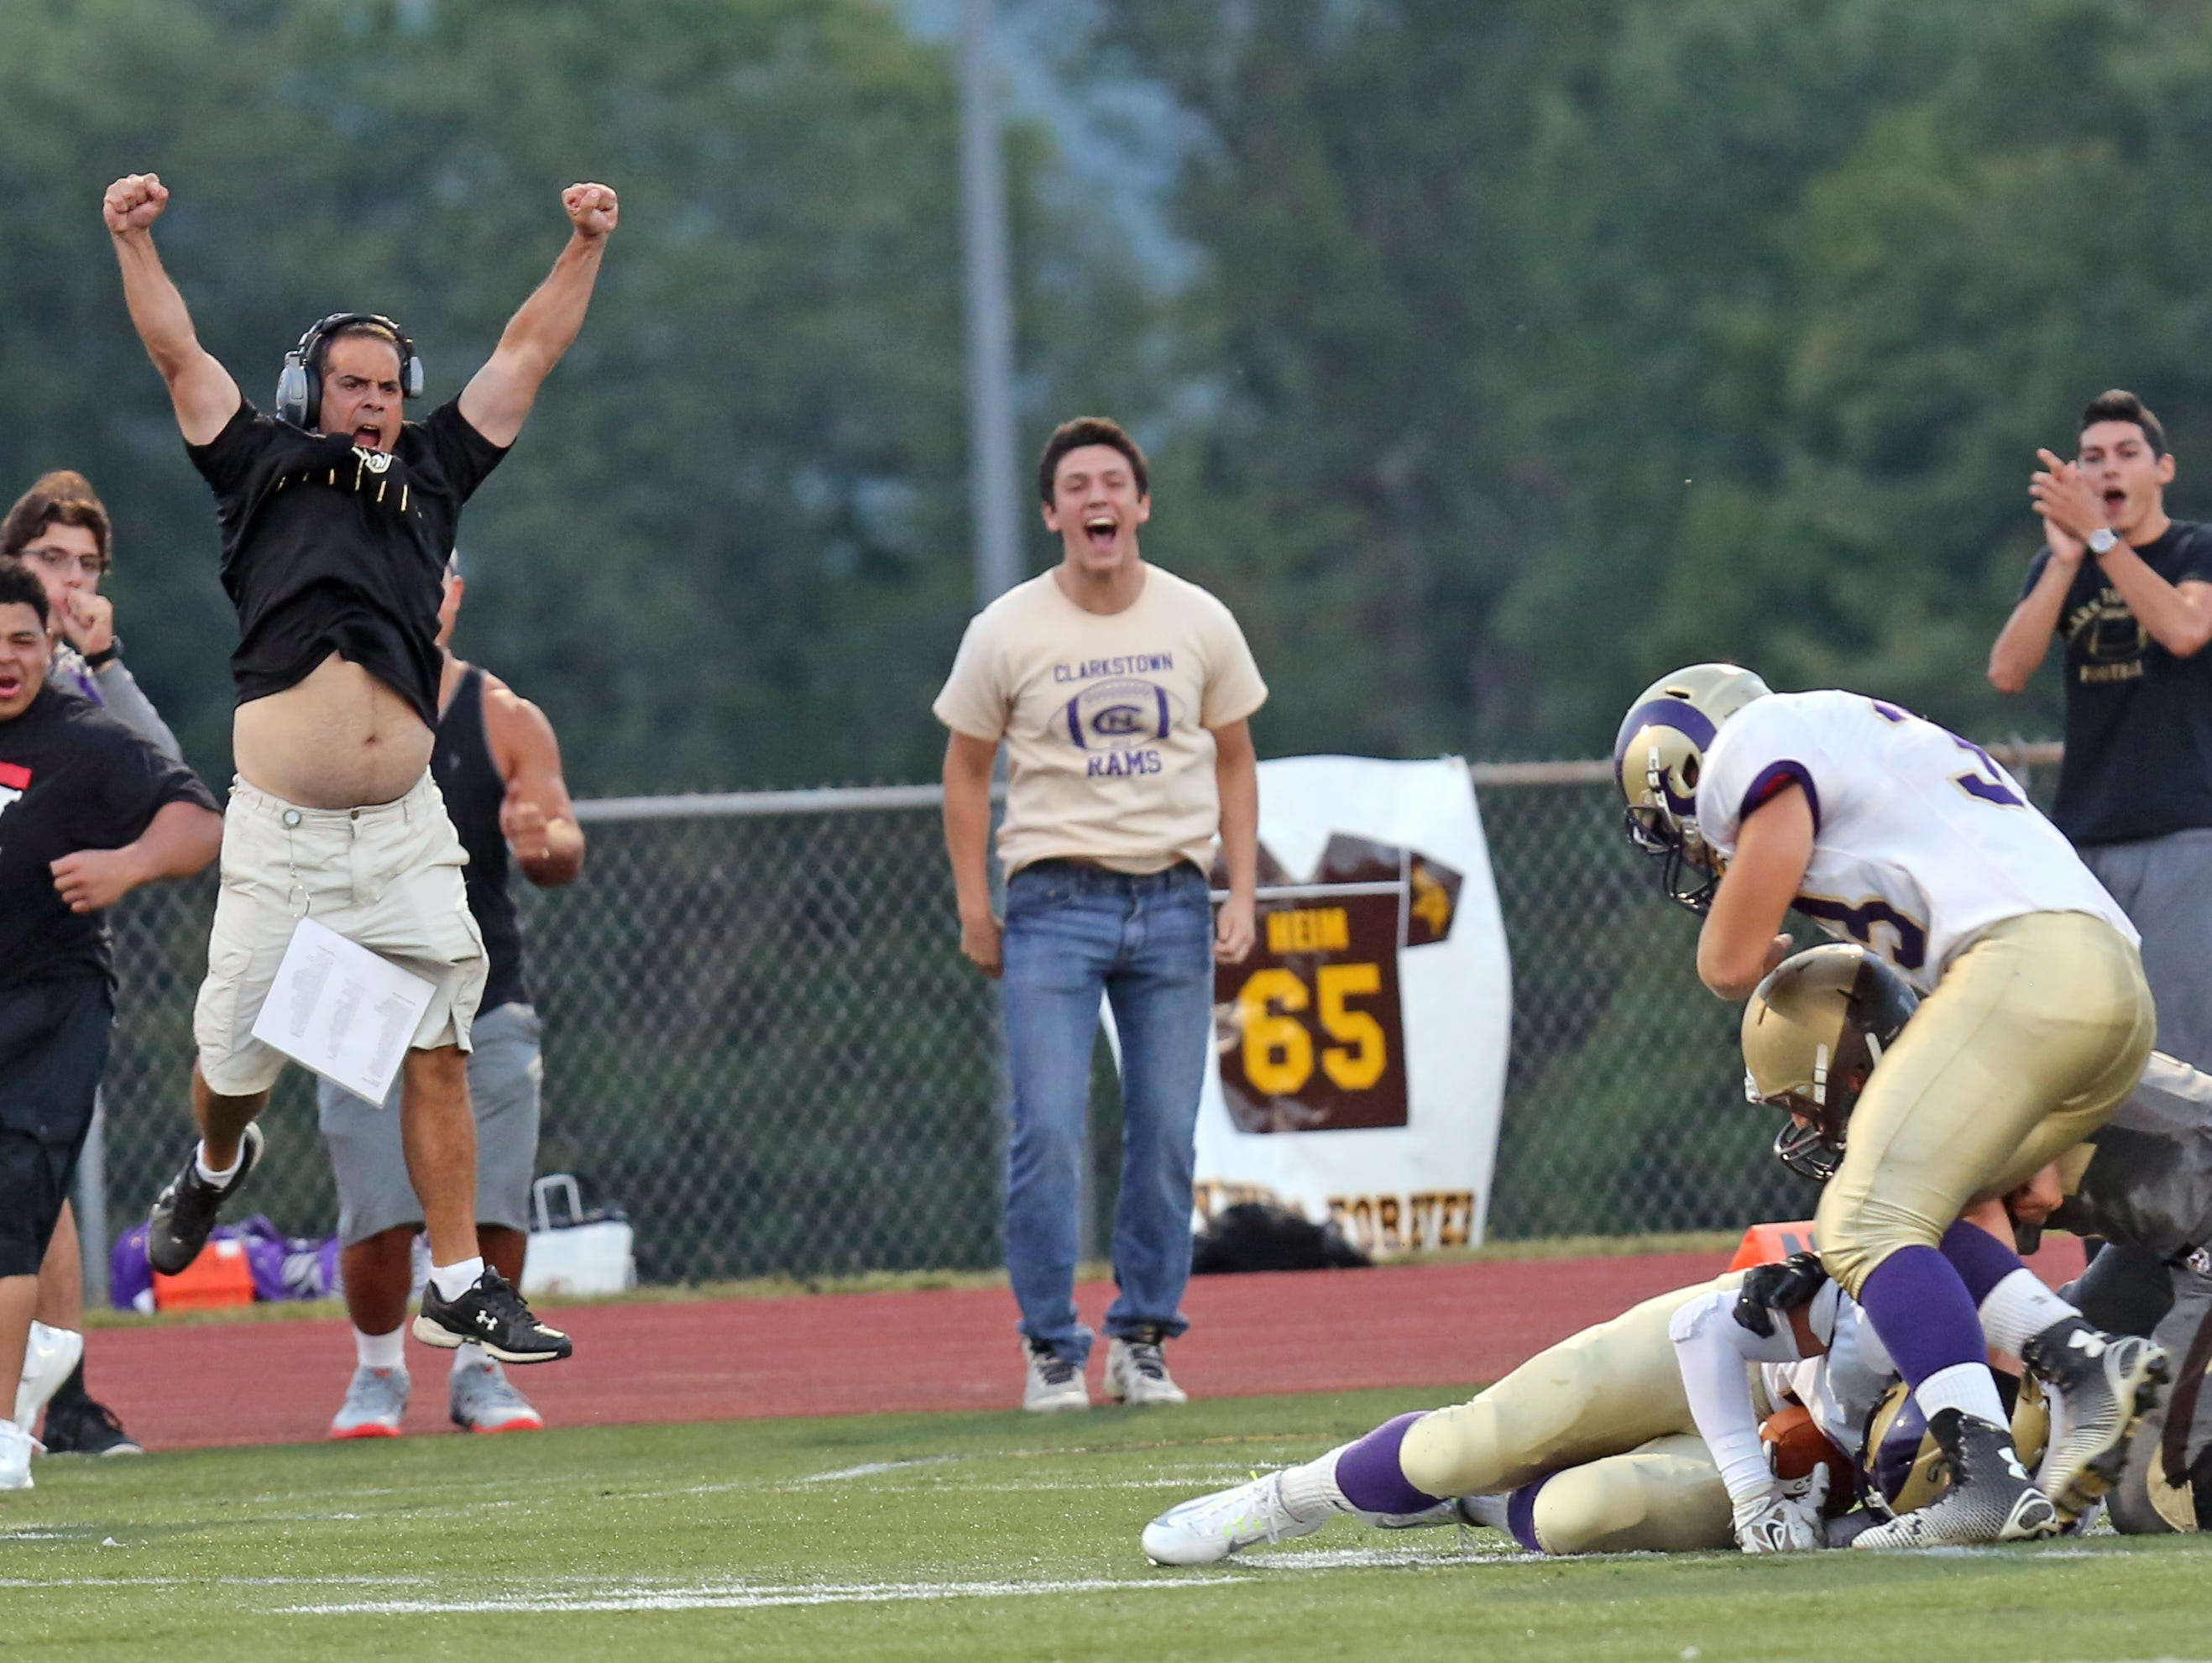 Clarkstown North's side line celebrates when Rhys Farrell-Bryan (7) intercepts the ball from Clarkstown South's Kyle Samuels (4) during game action at Clarkstown South High School in West Nyack Sept. 4, 2015. Clarkstown North defeated Clarkstown South 26-8.